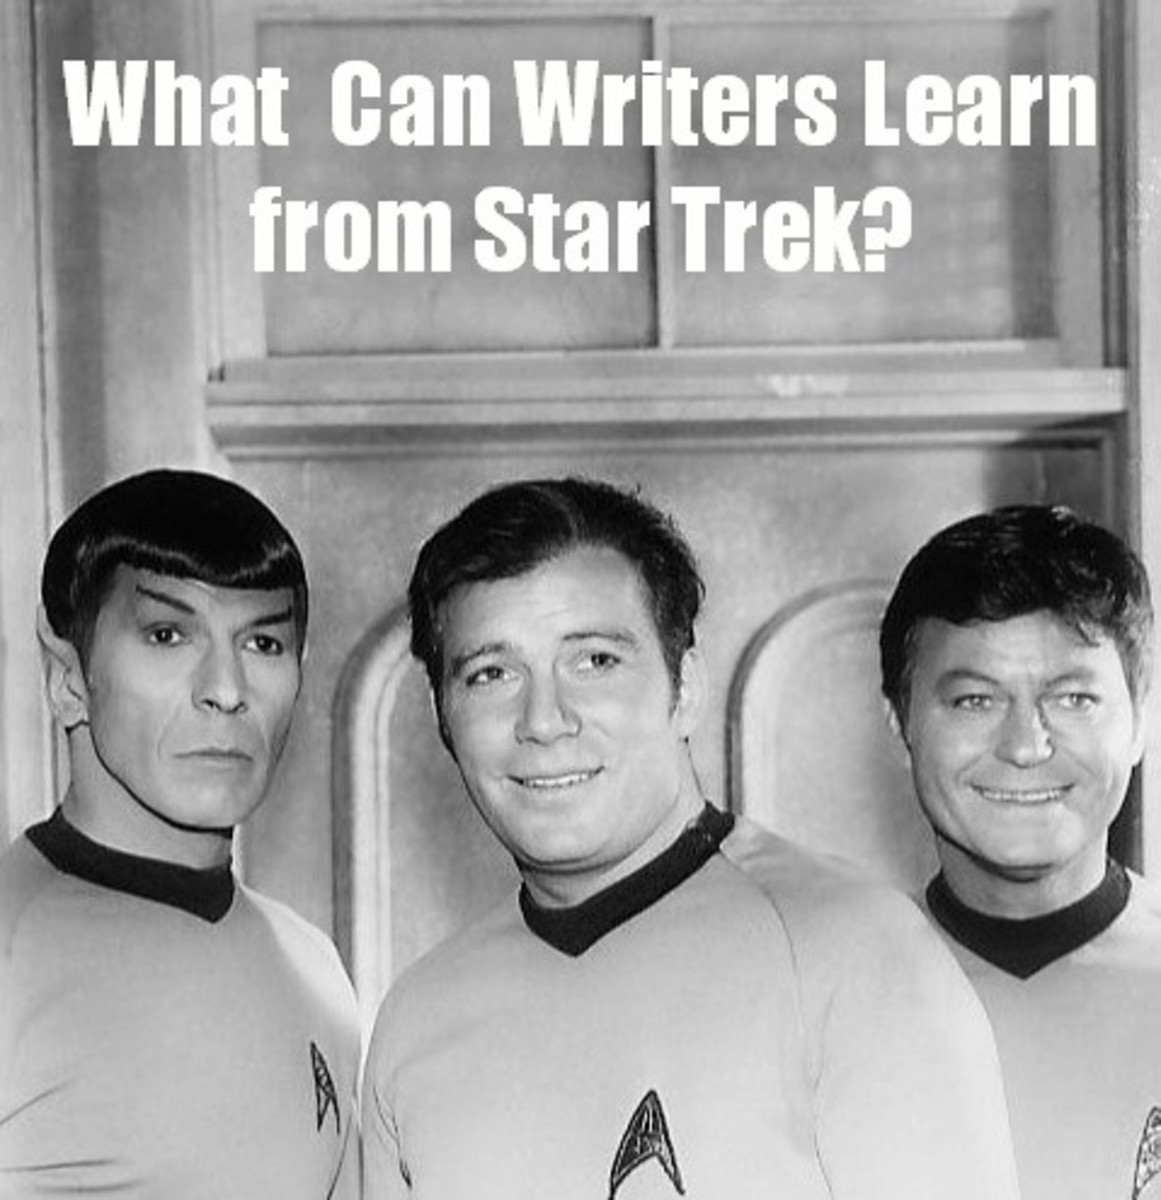 12 Things That Online Writers Can Learn From